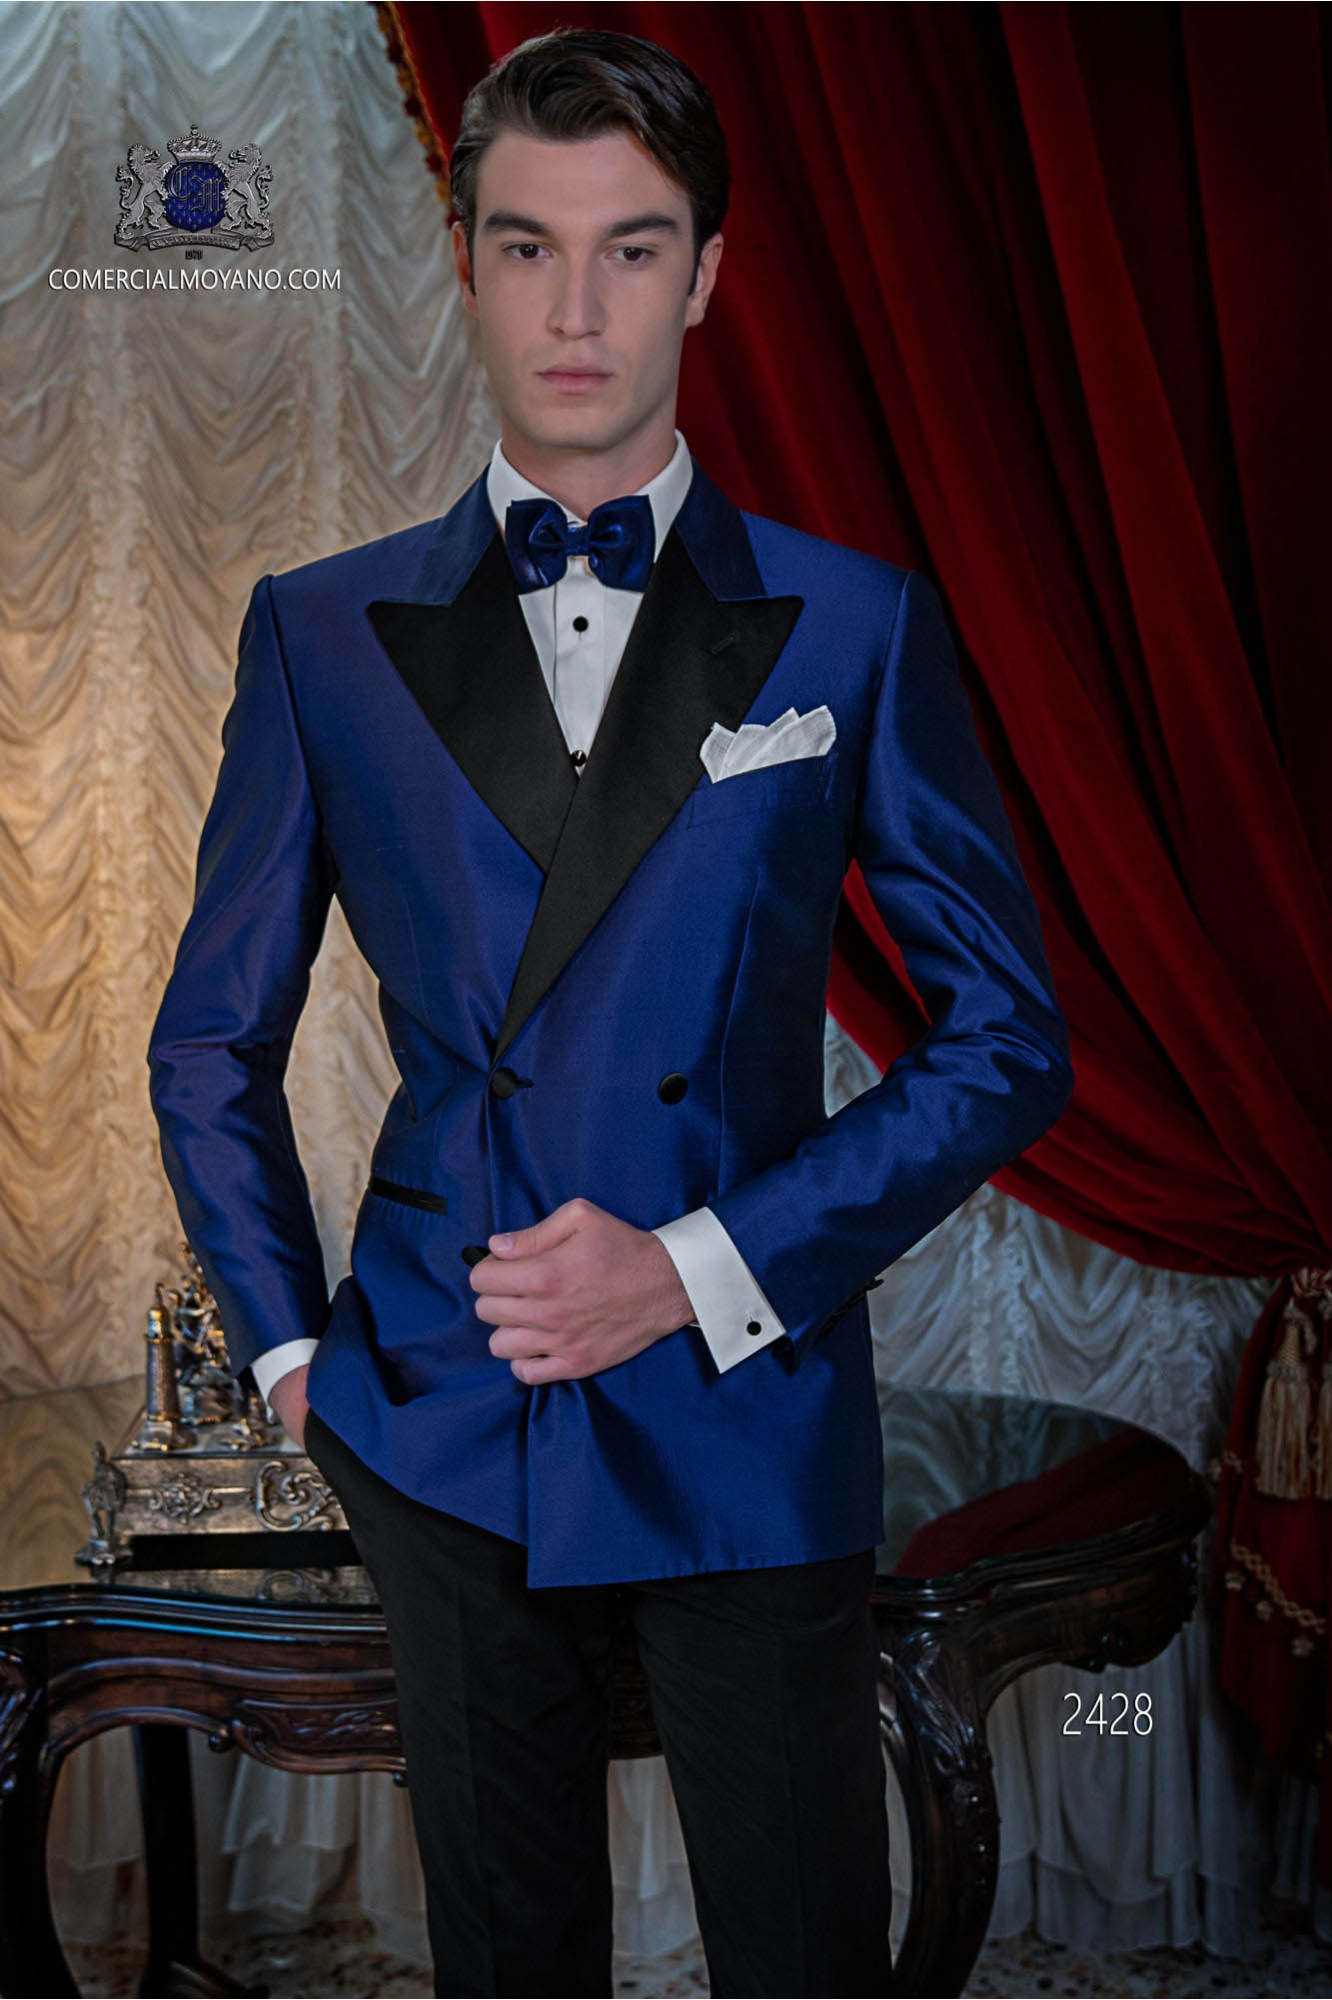 Tuxedo double breasted royal blue shantung with satin lapels